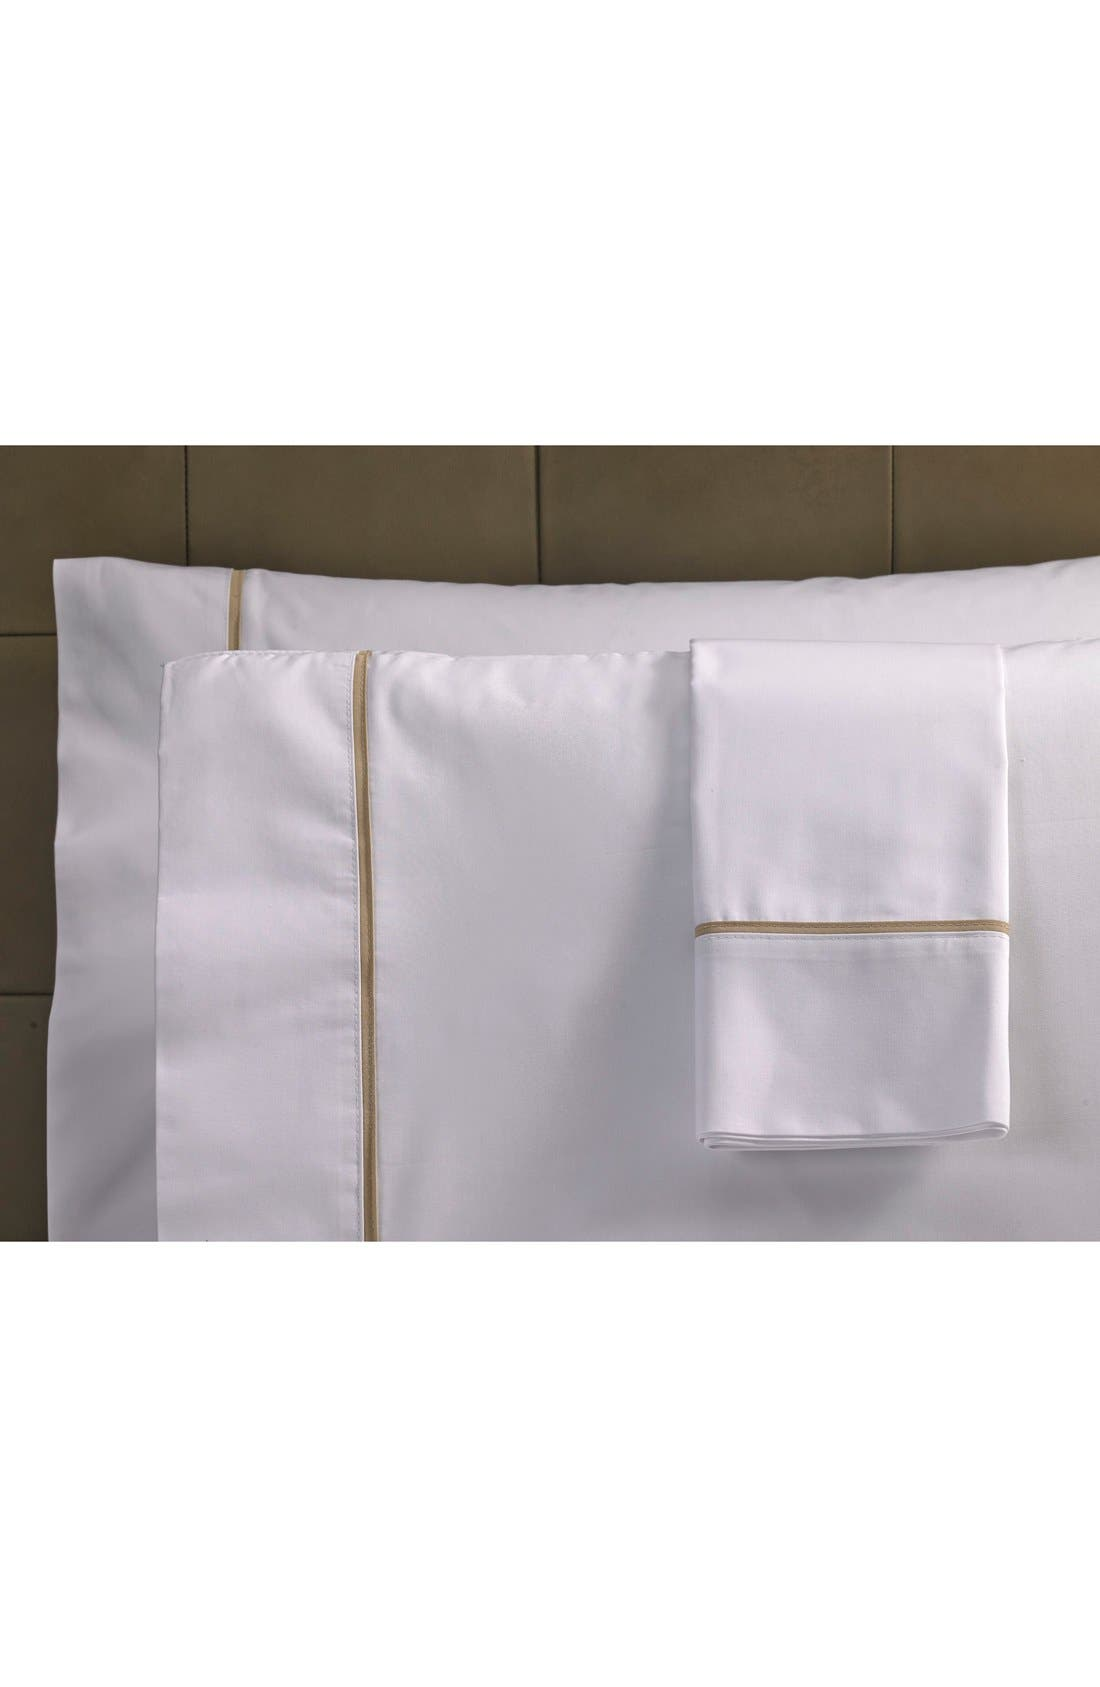 Westin At Home 'Ultra Luxe' 600 Thread Count Pillowcase (Set of 2)